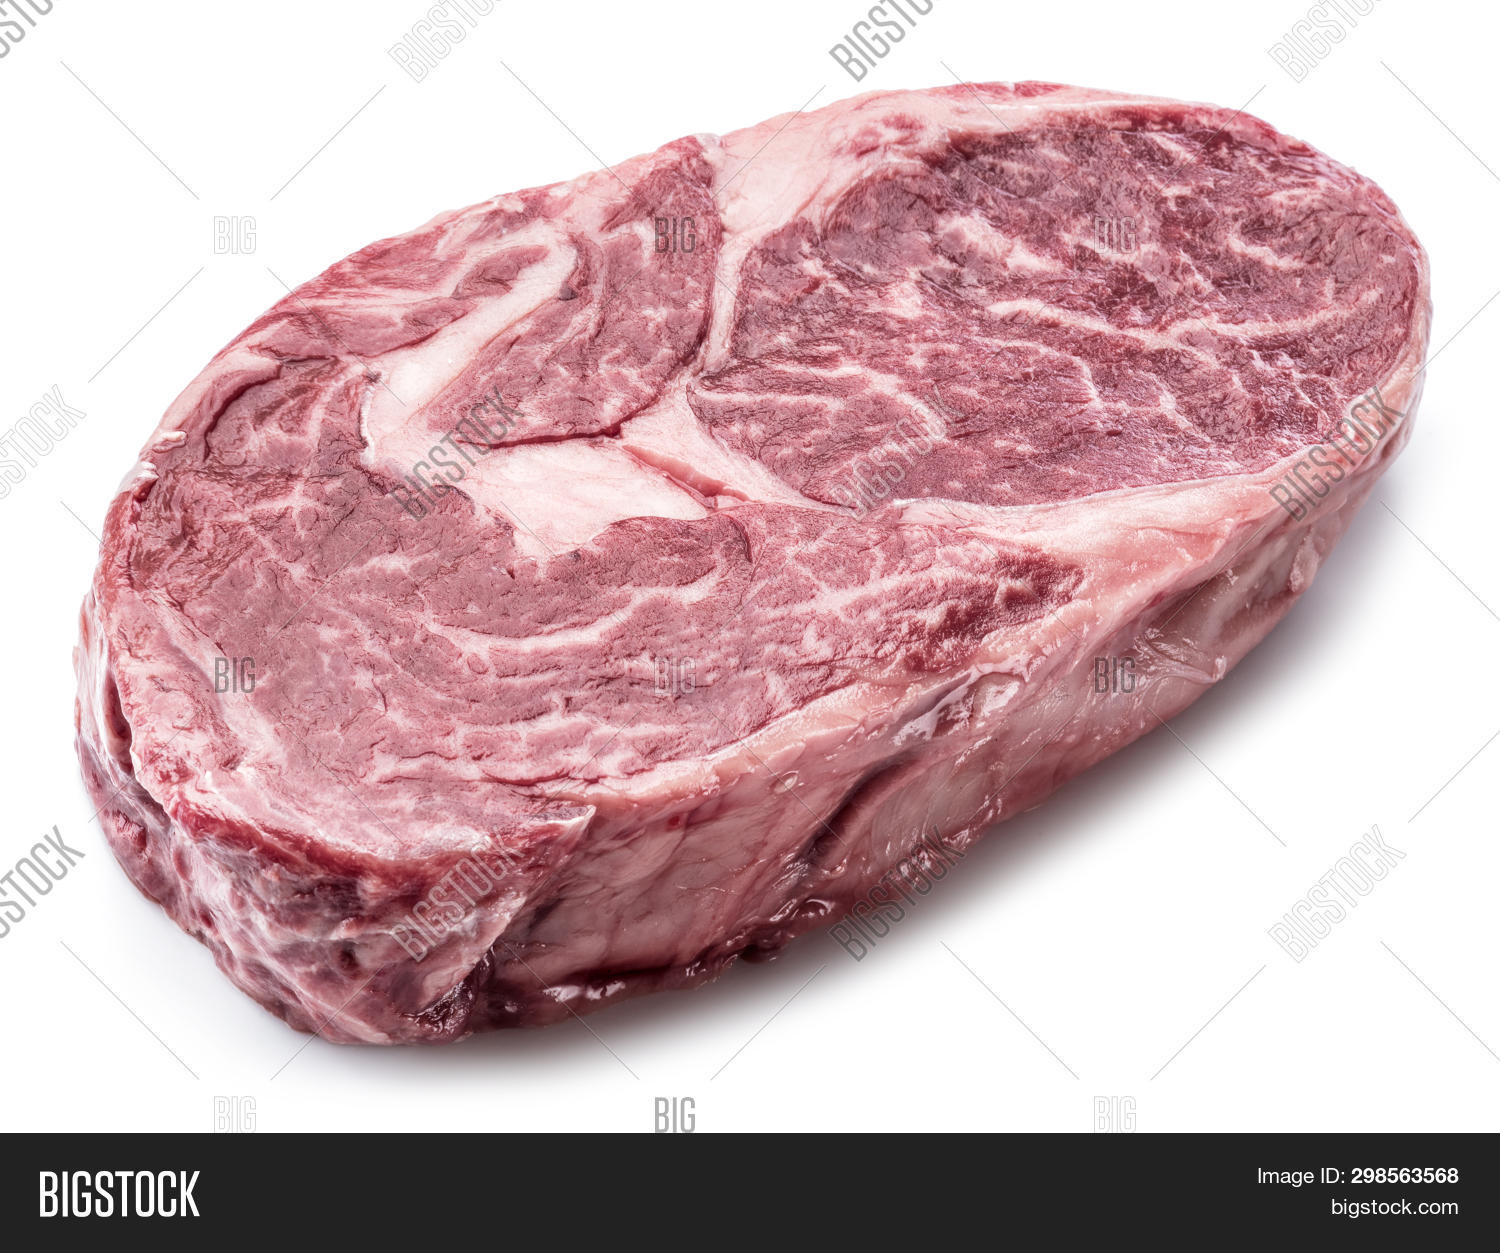 barbecue,beef,choice beef,dinner,fillet,food,fresh,gourmet,isolated,loin,meal,meat,organic,porterhouse,protein,raw,raw steak isolated,rib,rib eye,ribeye,ribeye steak,section,short,sirloin,slice,steak,uncooked,white,white background